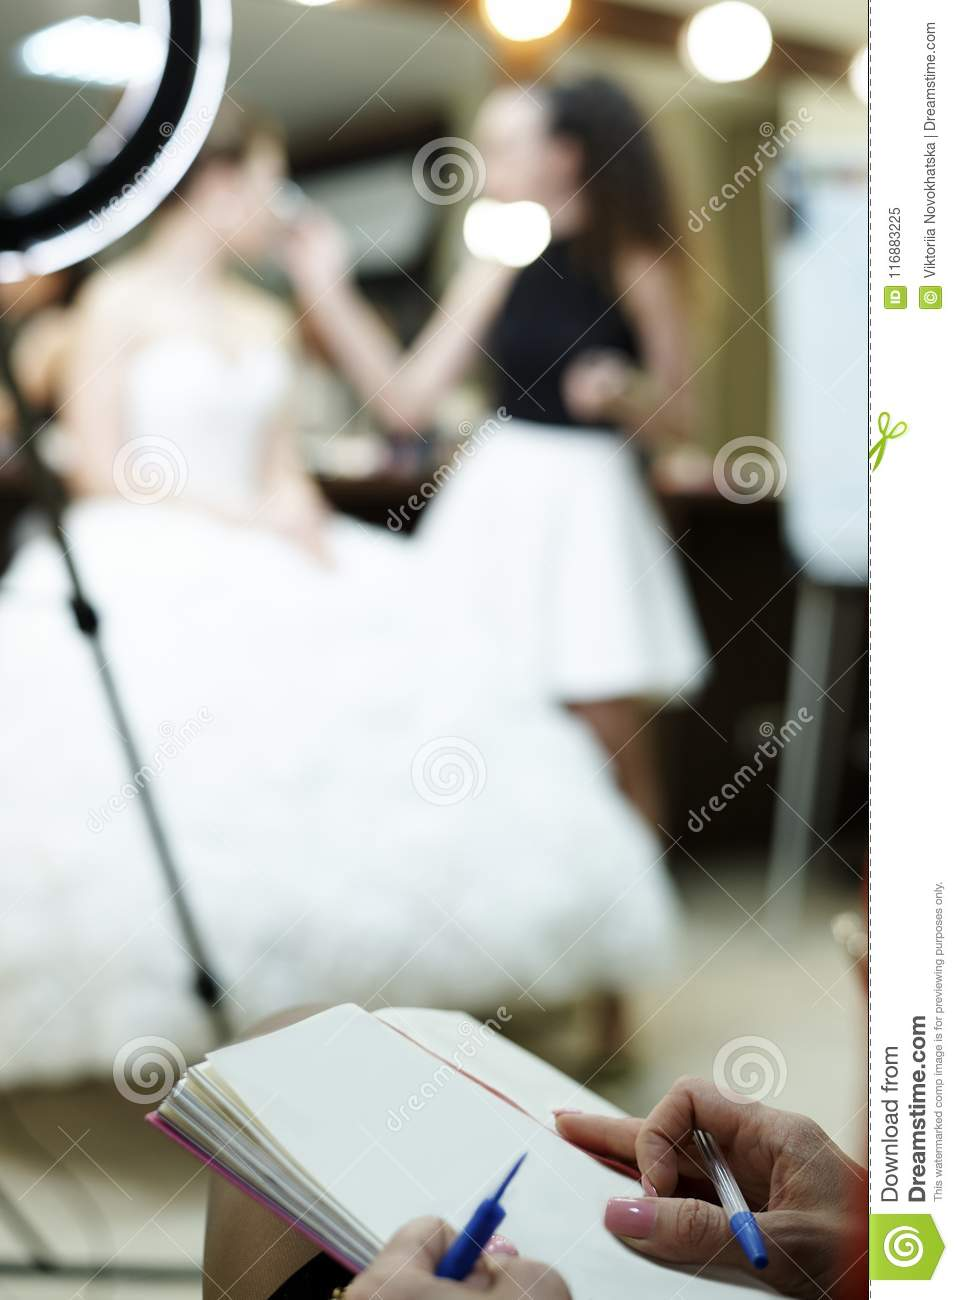 The girl`s hand holds a pen on sheet of paper.